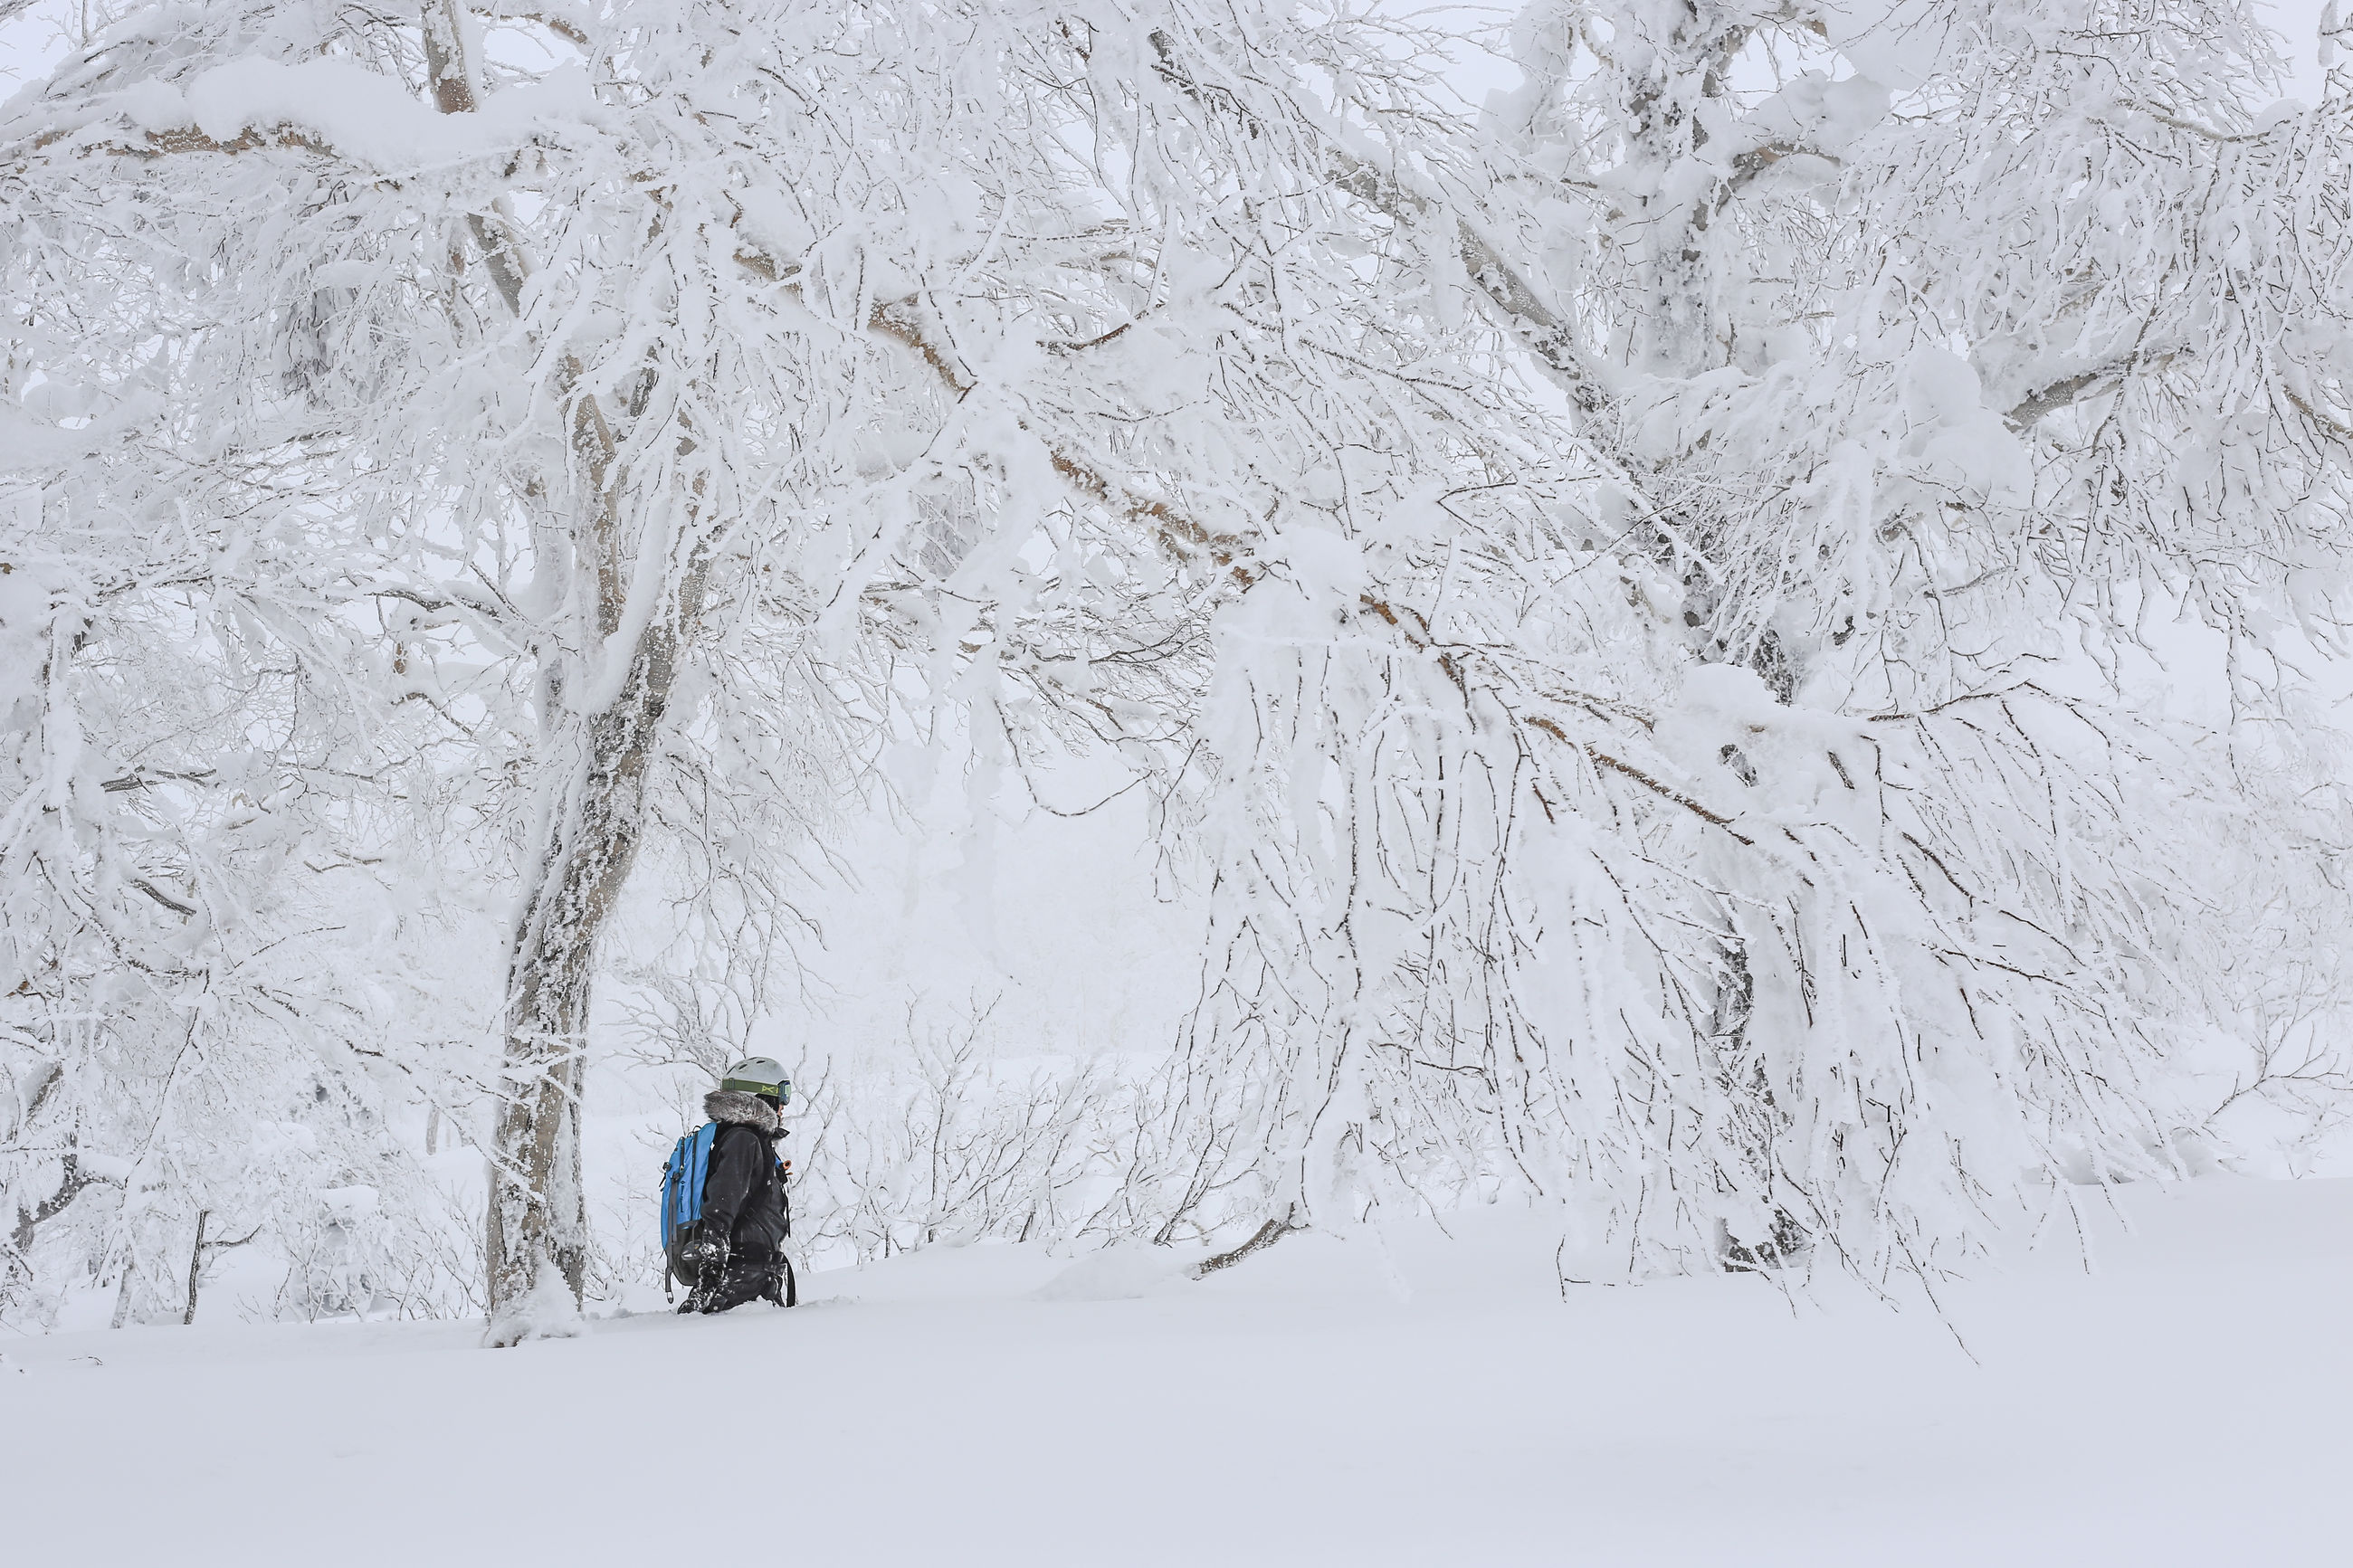 Hiker amidst snow covered bare trees in forest